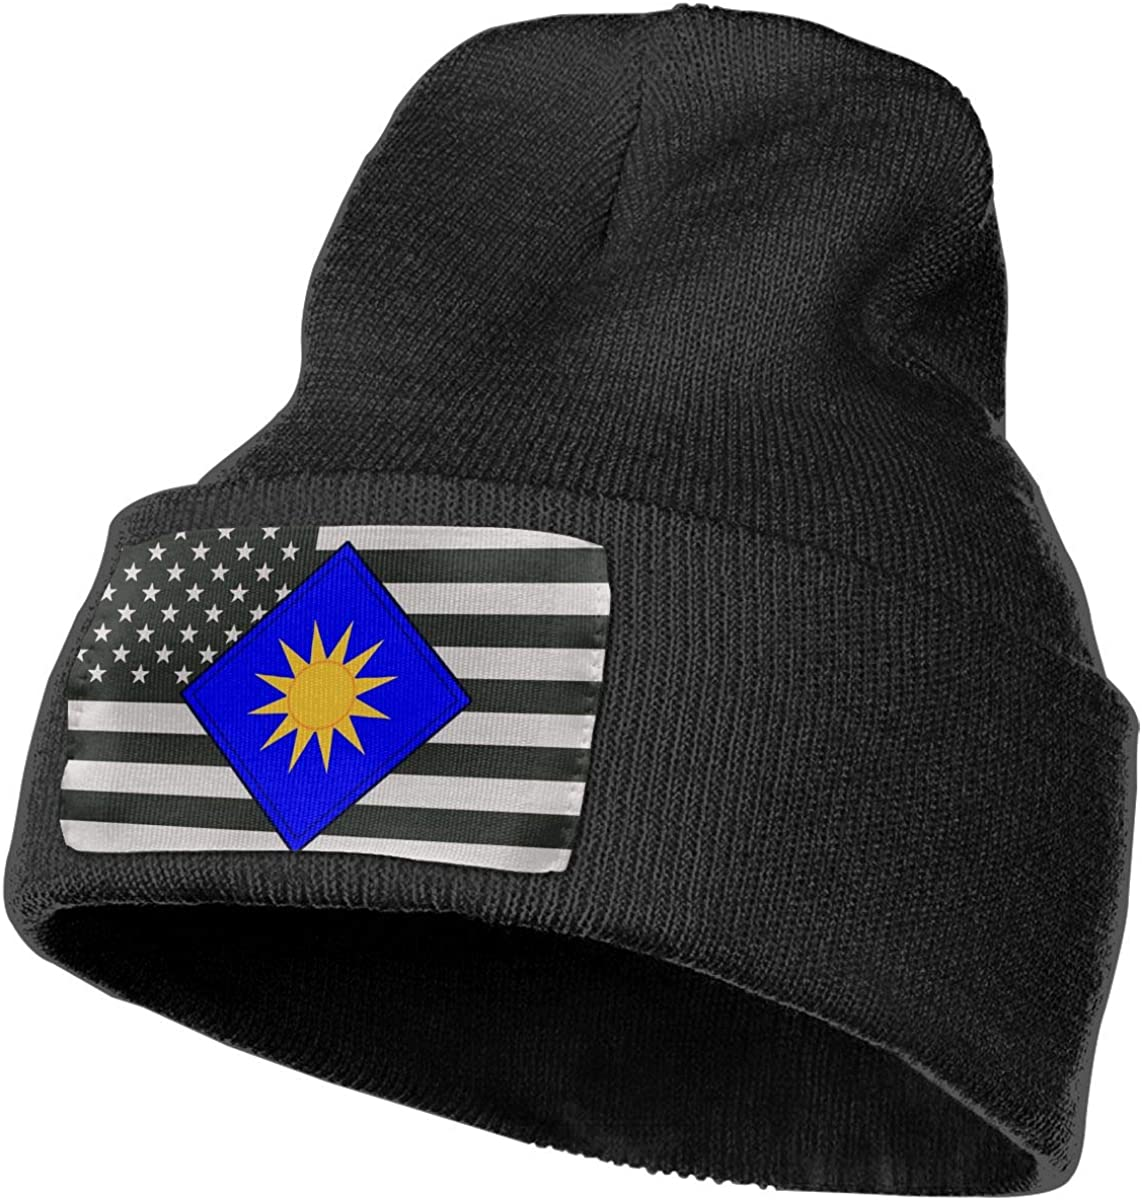 Beanie US Army 40th Infantry Division Knitted Hat Winter Skullcap Men Women